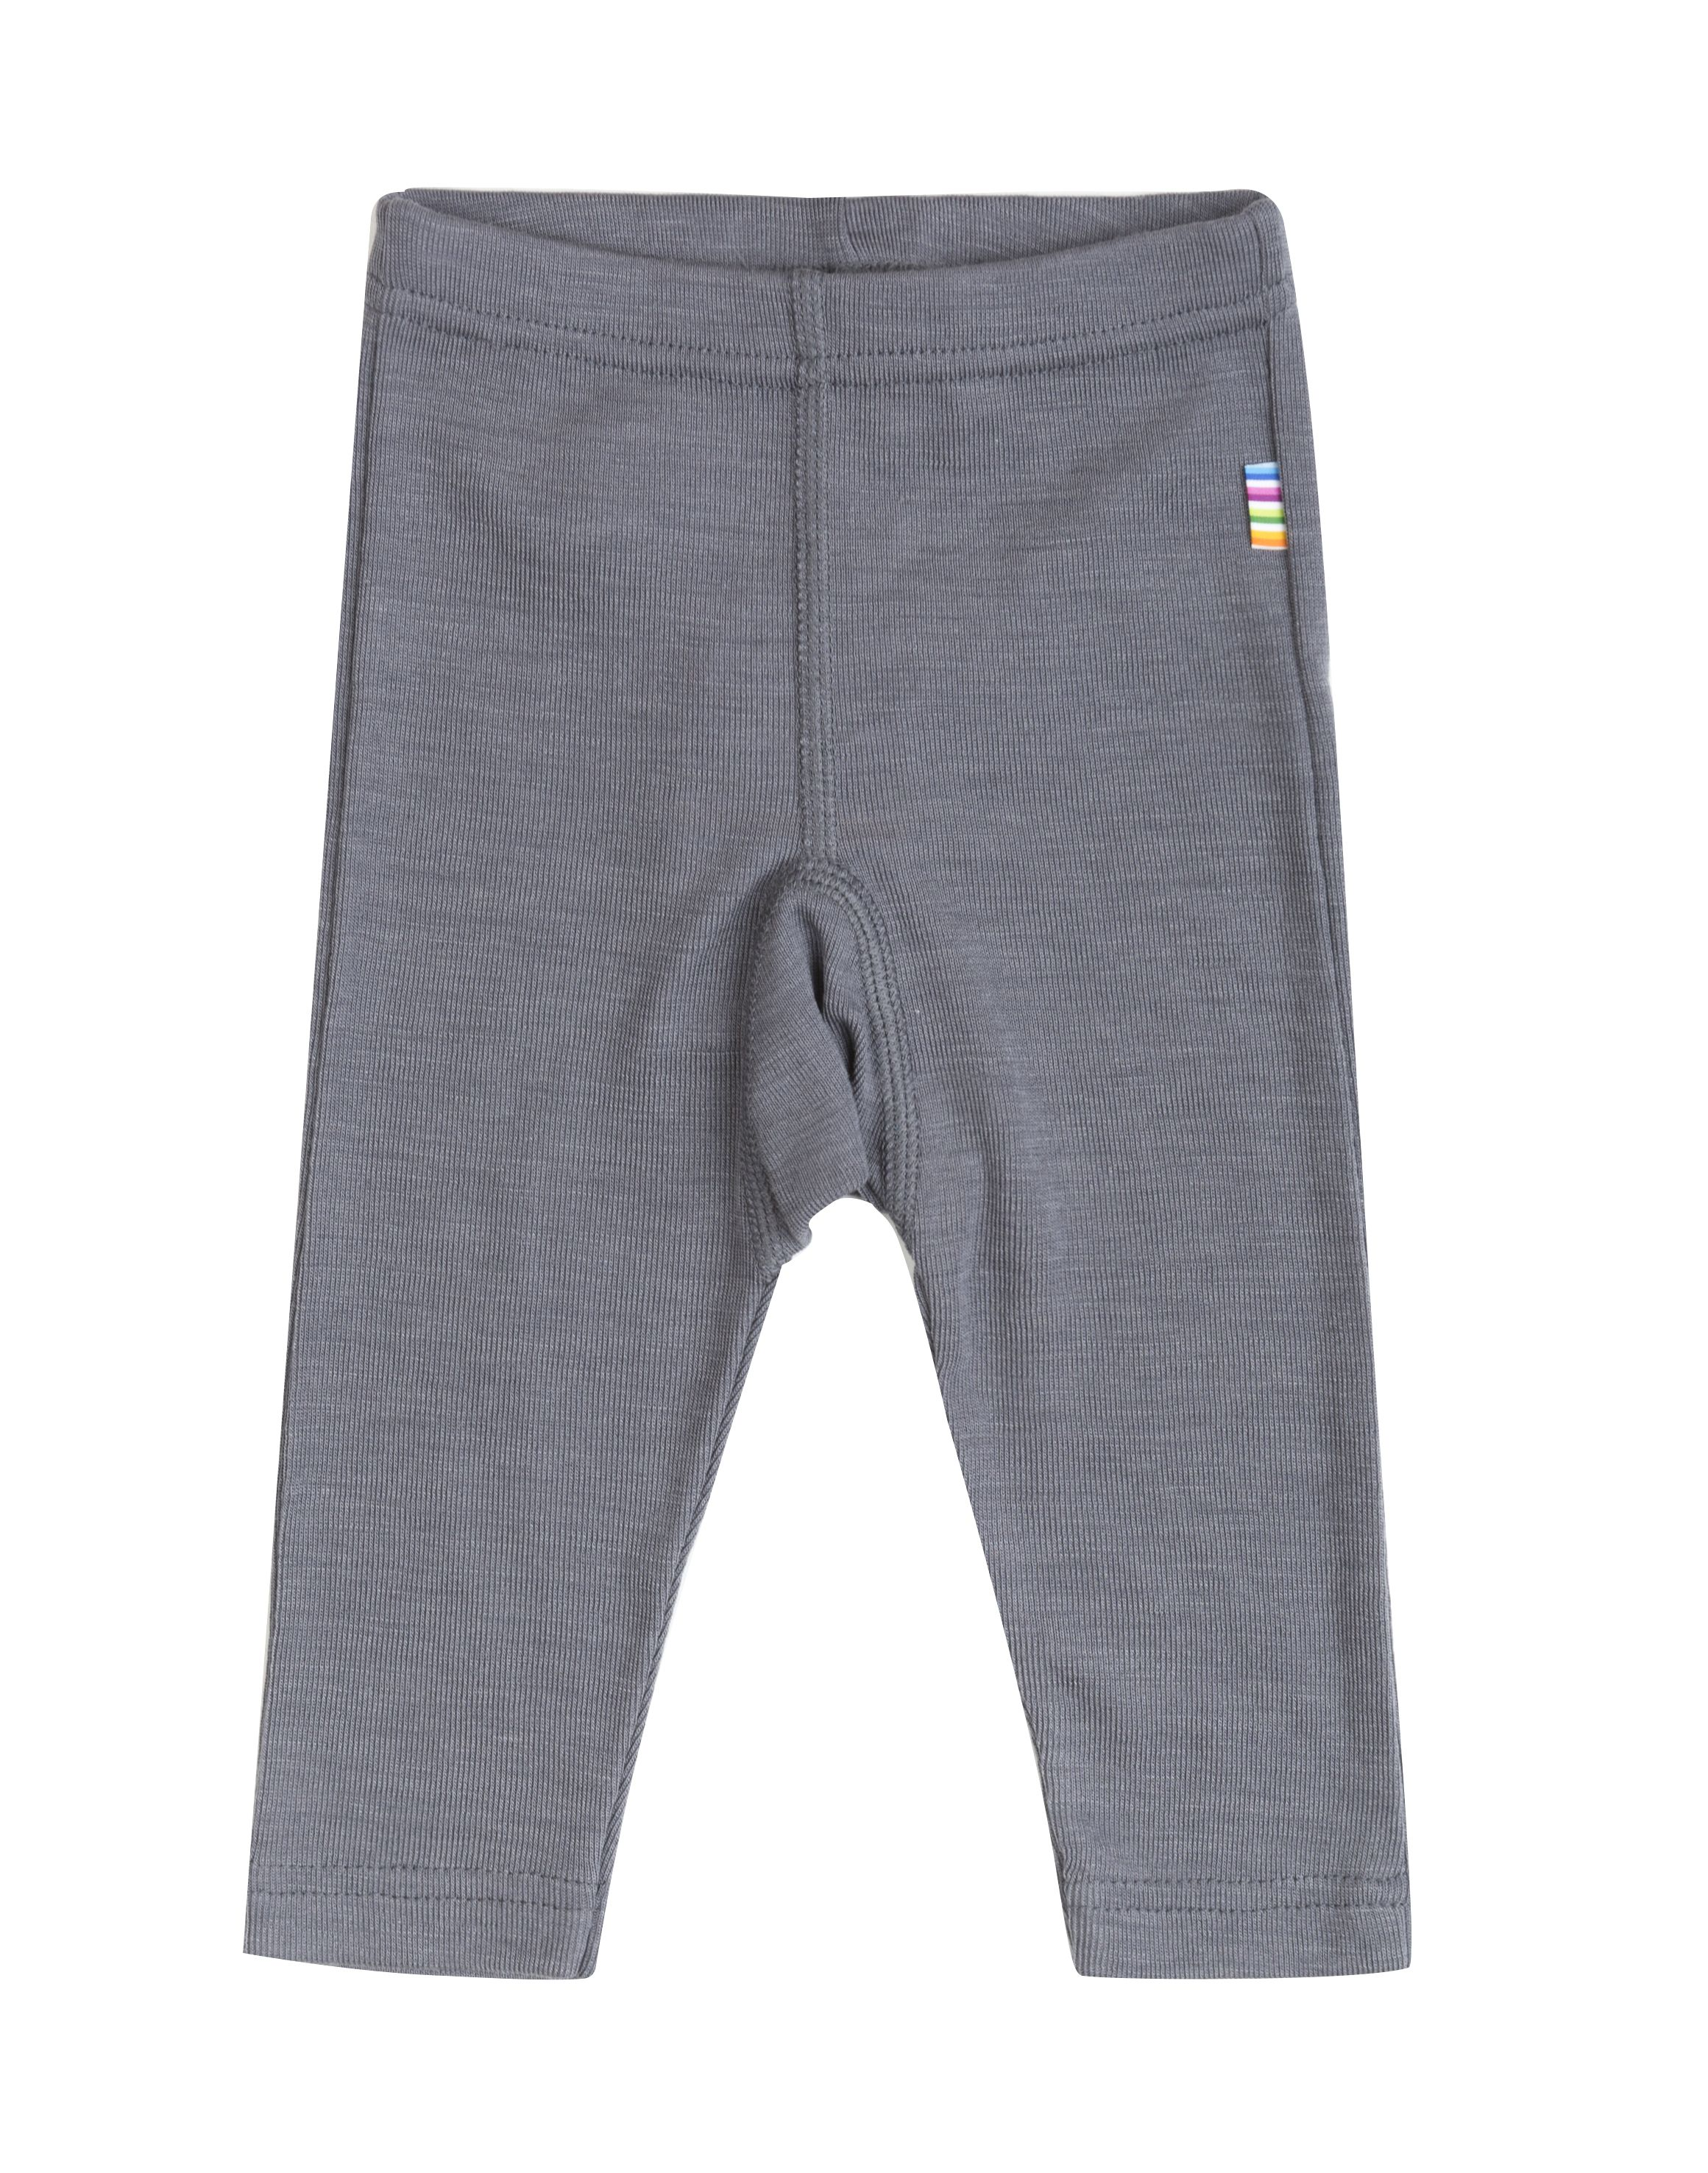 Image of   Leggings fra Joha i uld/silke - Rabbit grey